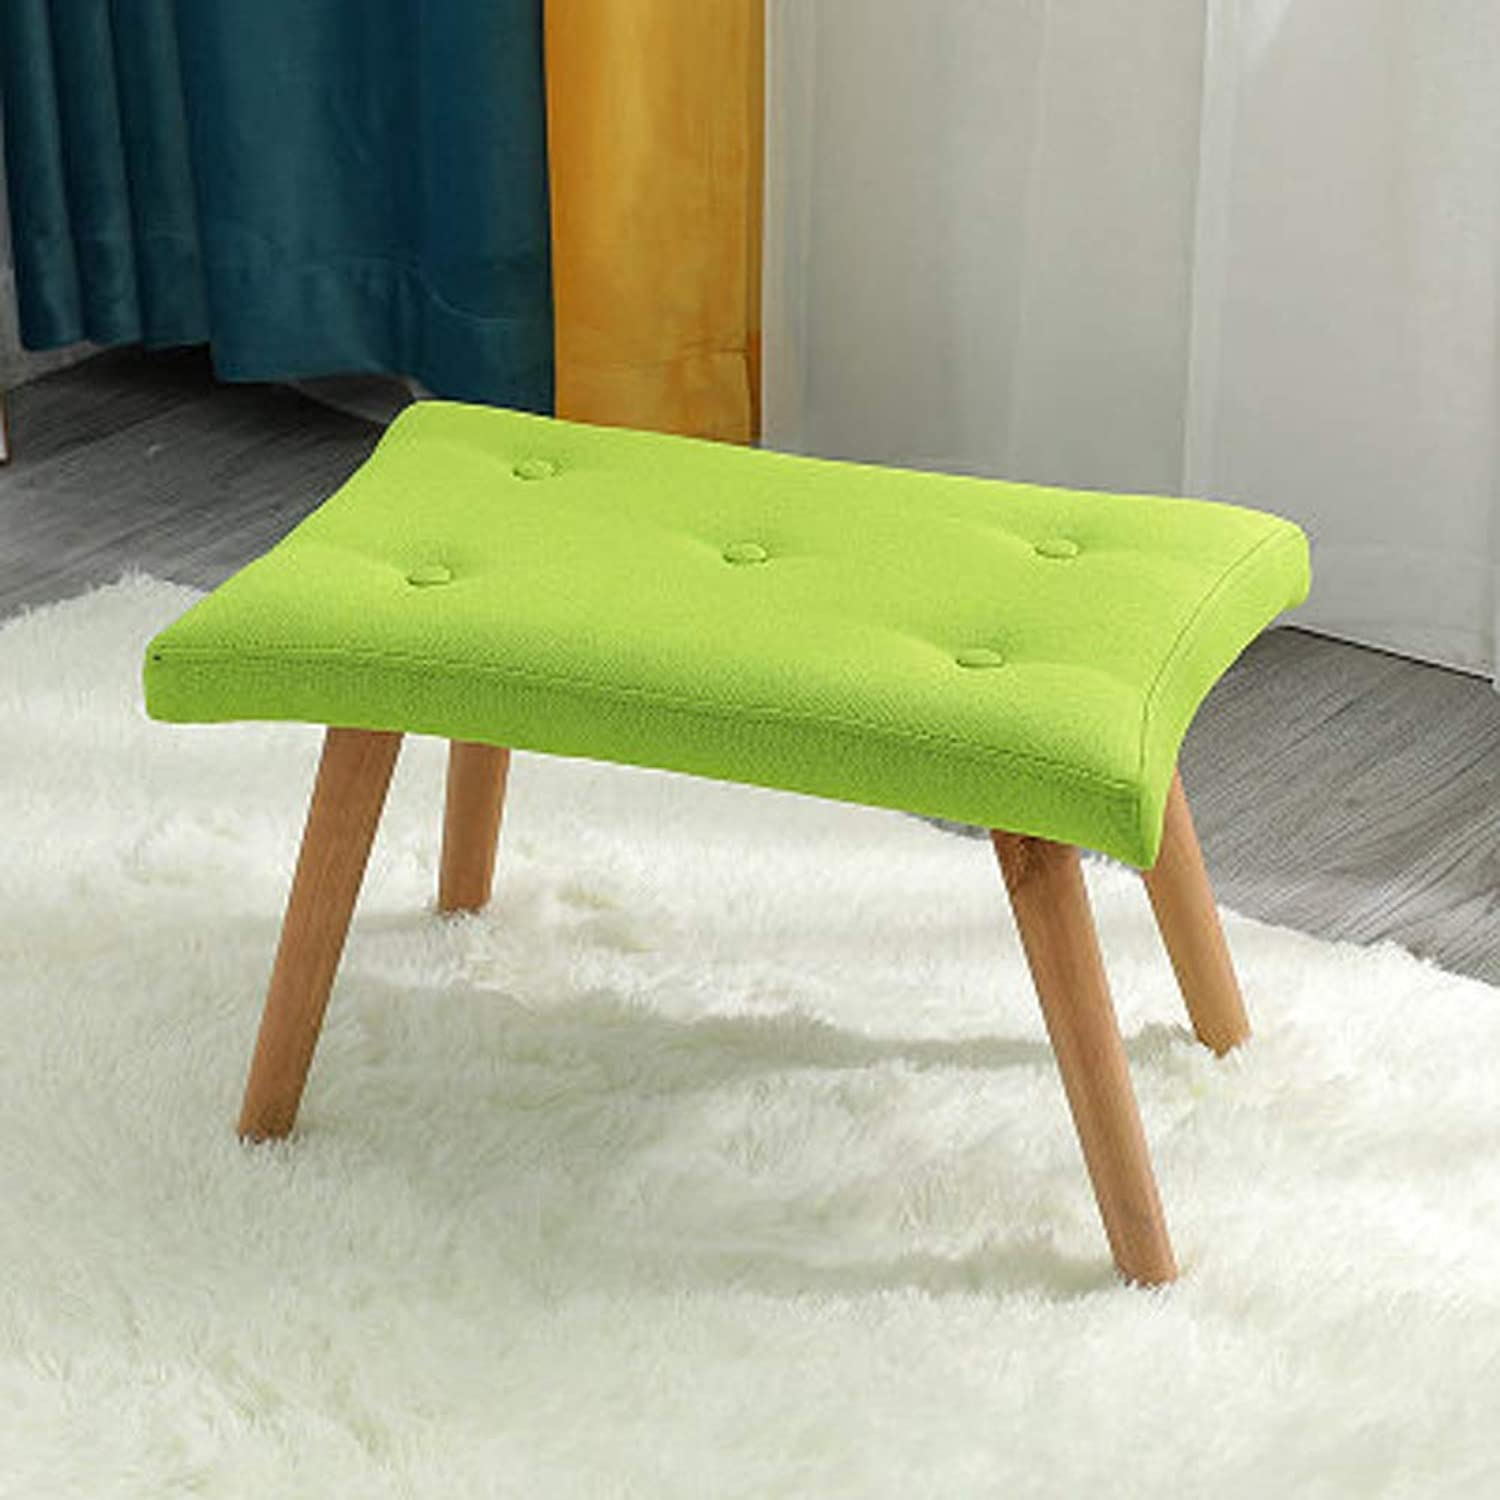 AINIYF Footstool Solid Wood Stool Living Room Creative Bench Leisure Stool Stool Home Adult shoes Bench Sofa Stool Fabric Pouf Removable Bedroom Stool 21.6x14.2x14.2inches (color   Green)